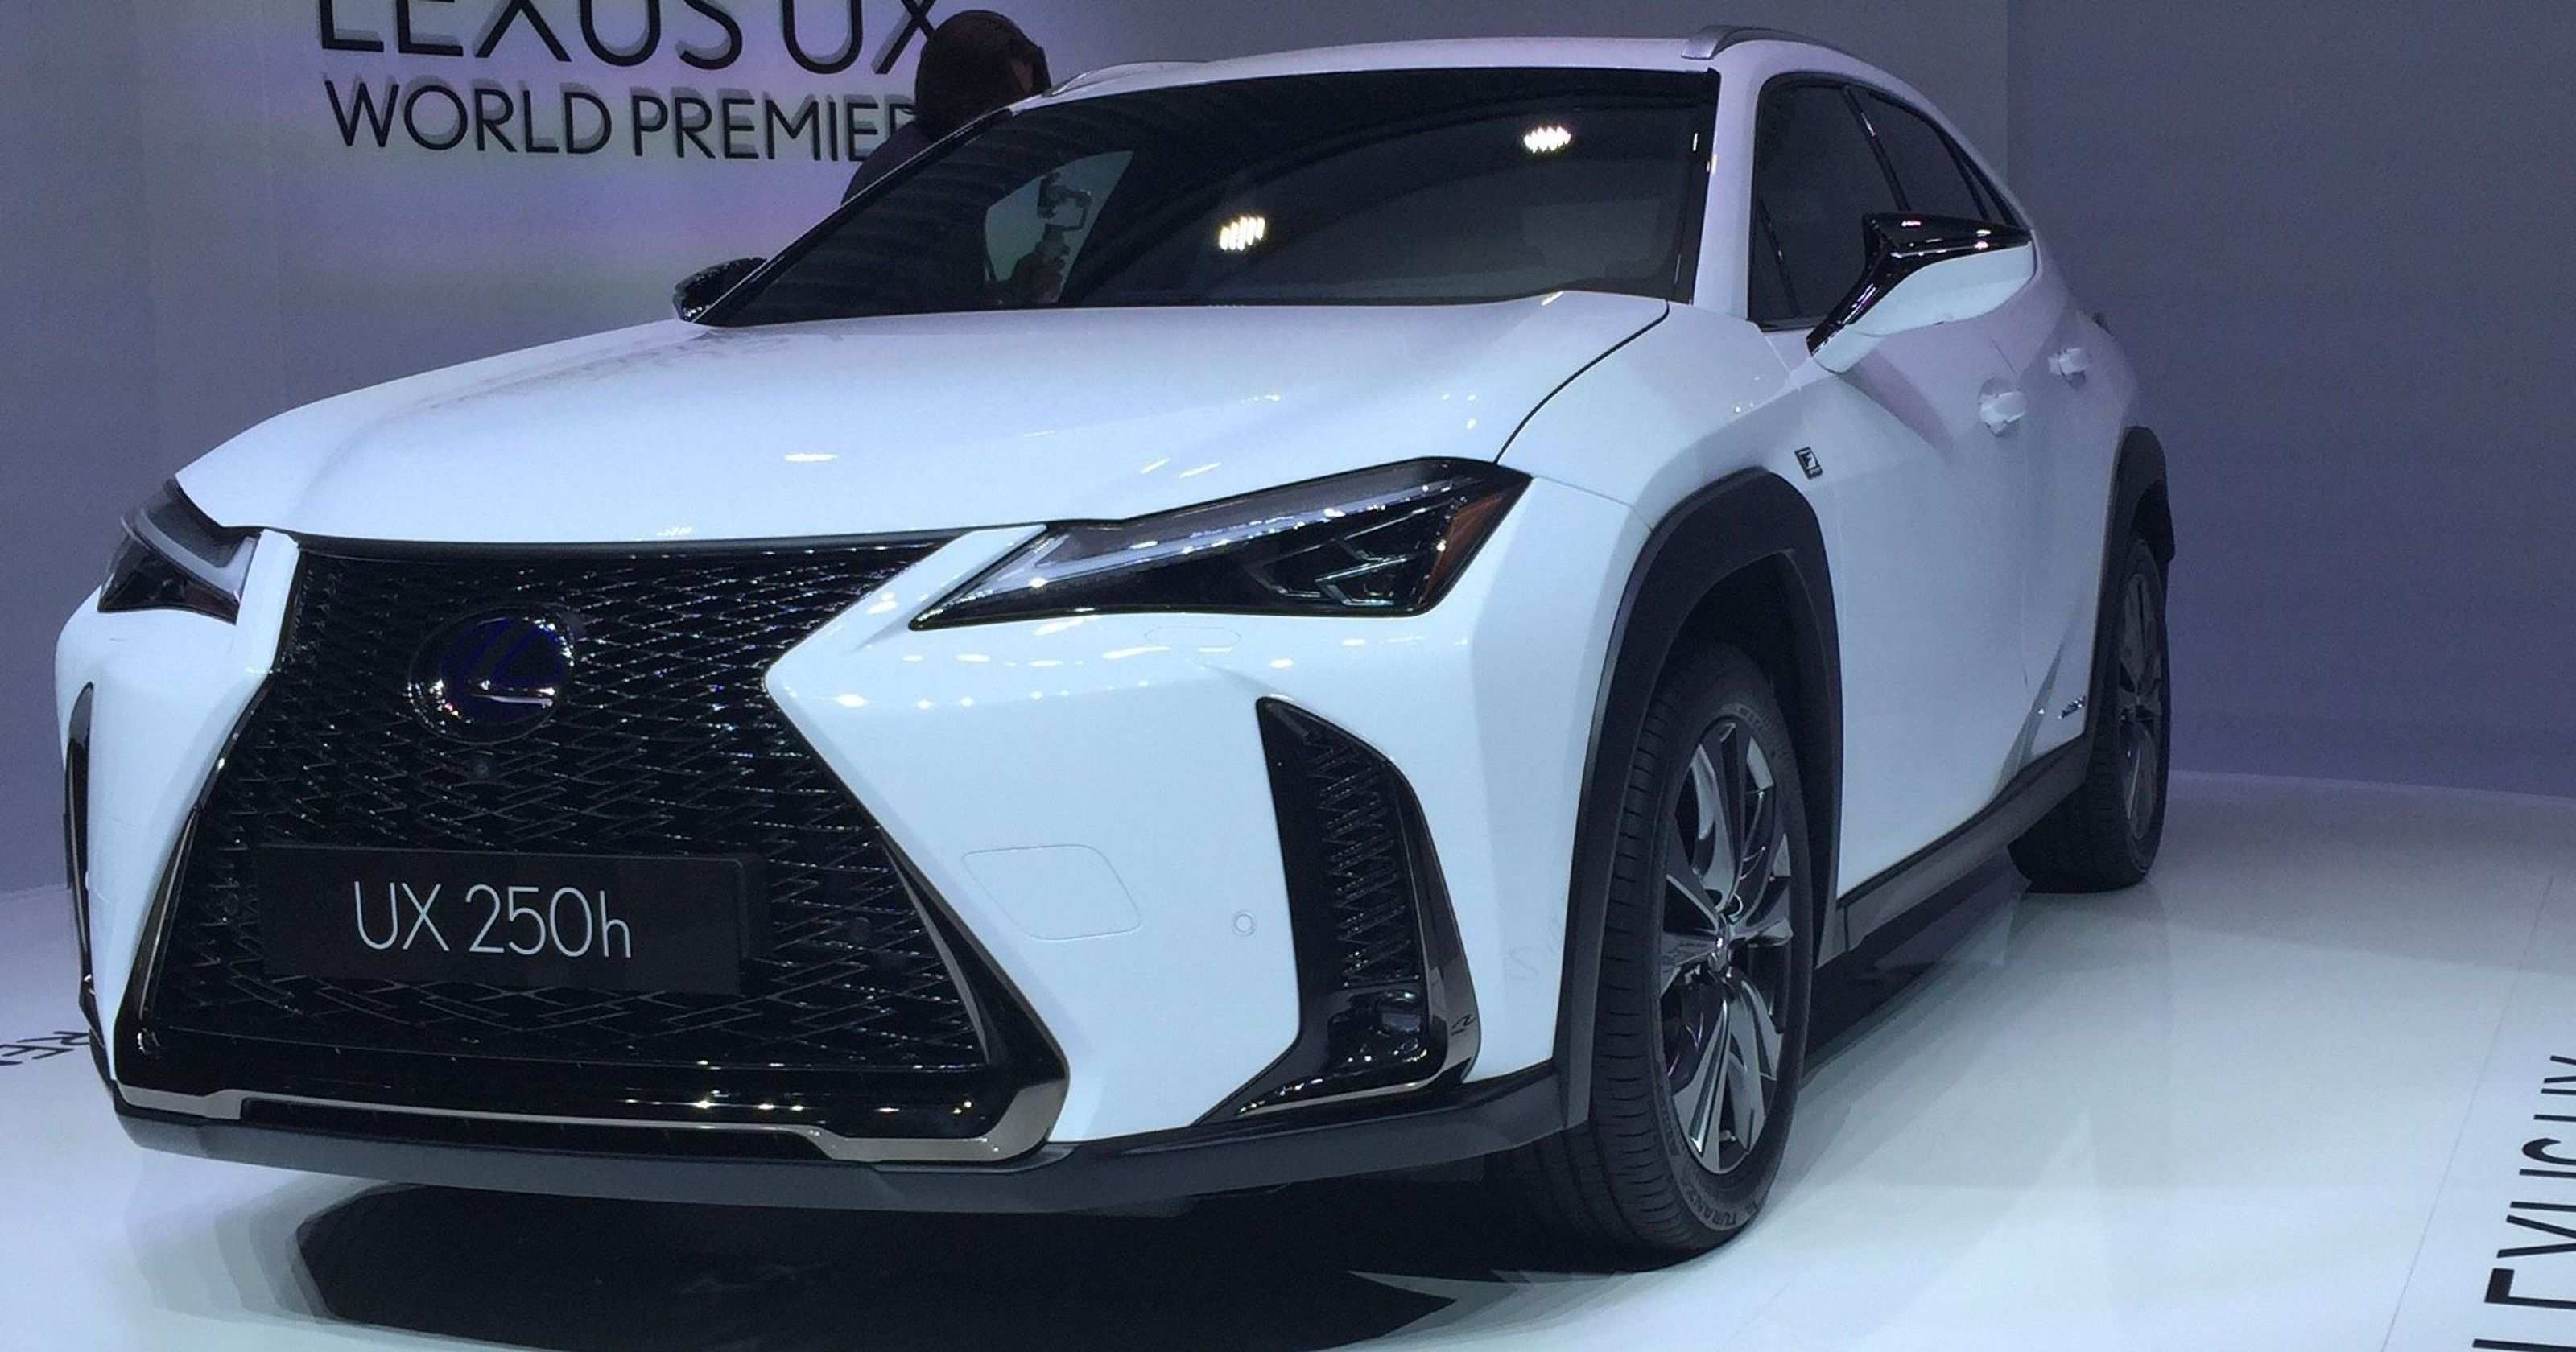 29 Great Best 2019 Lexus Lineup Redesign And Price Spesification with Best 2019 Lexus Lineup Redesign And Price